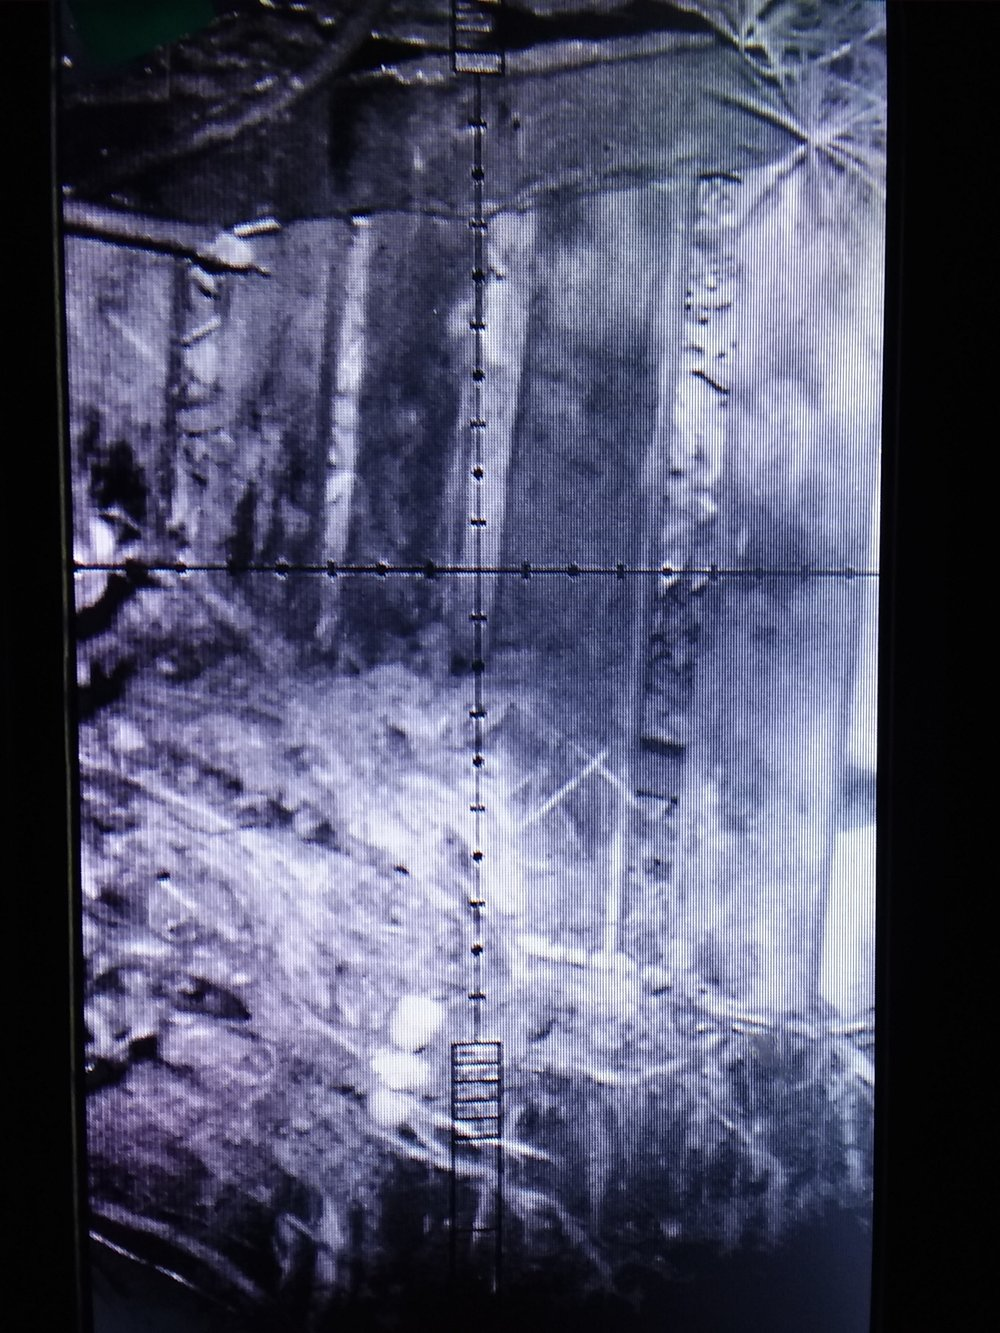 The compost pile, a favorite hangout for local rodents. Custom aspheric IR illuminator at only ~60 meters as seen through our digital night vision setup.